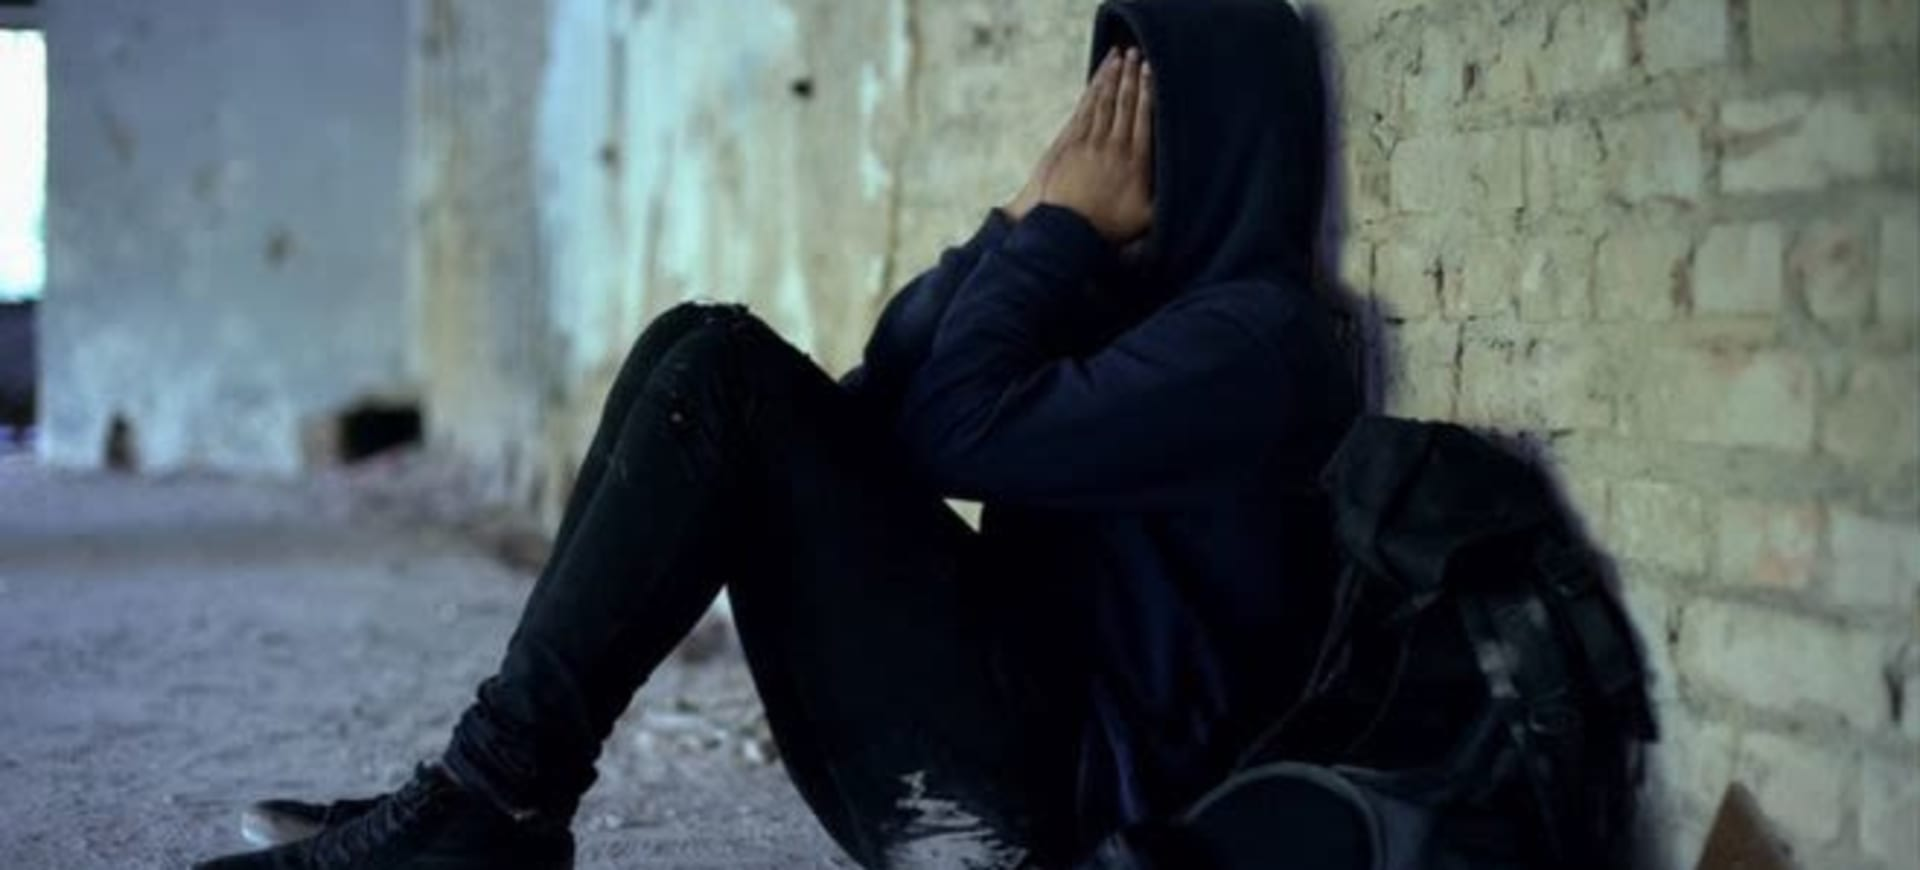 Coronavirus: 'Unprecedented' rise in youth homelessness